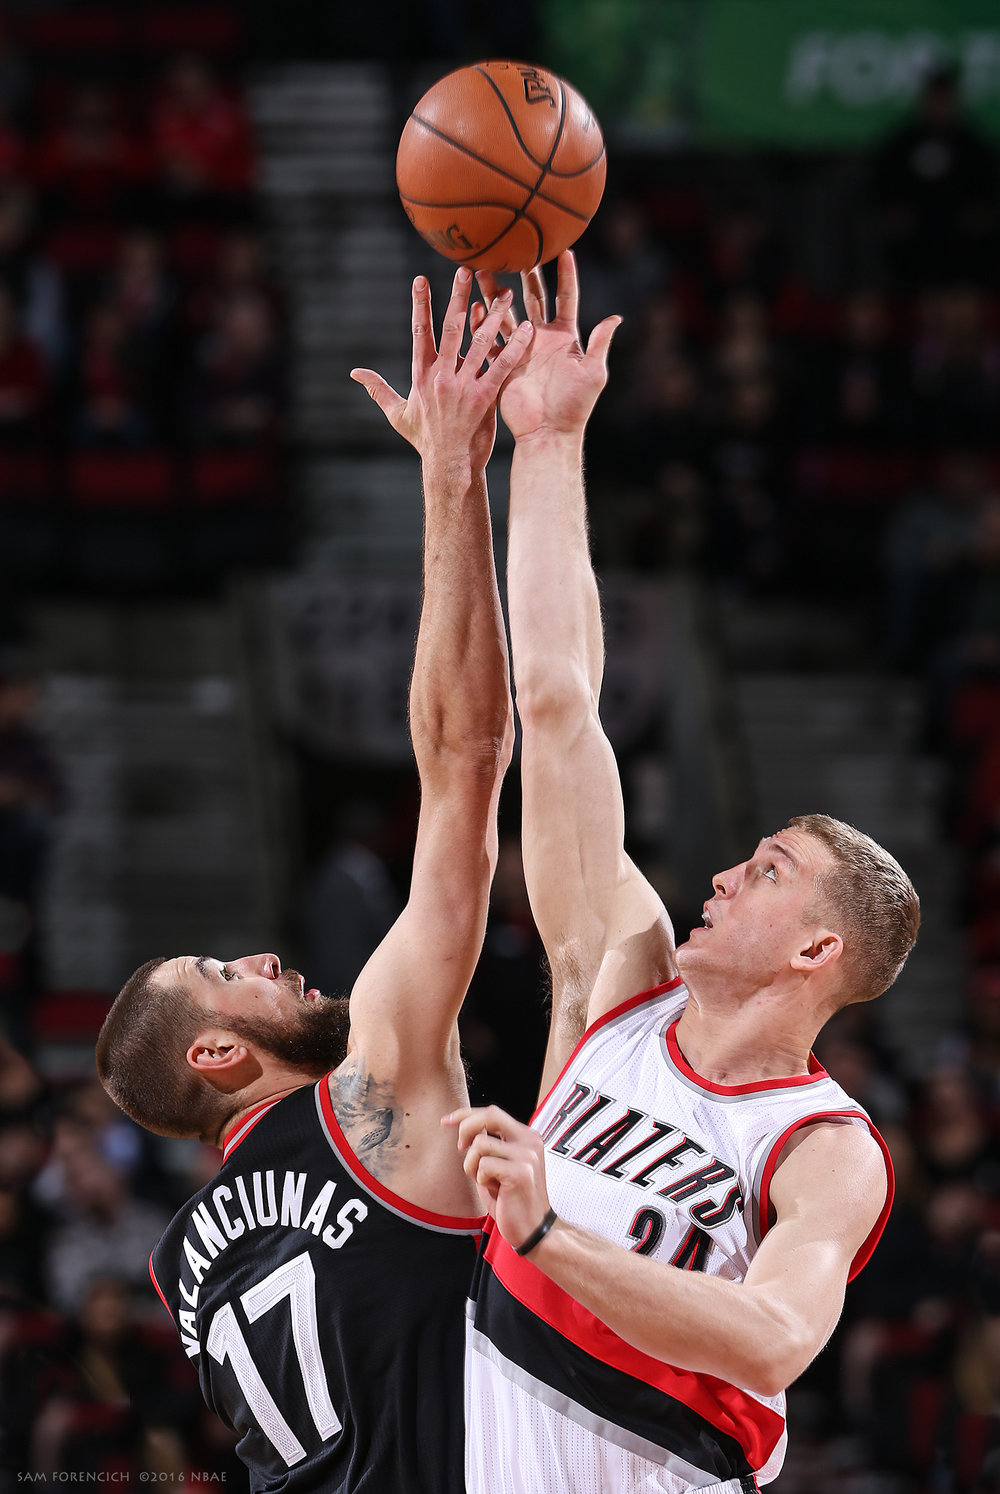 Portland, OR - The opening tip off between Jonas Valanciunas #17 of the Toronto Raptors and Mason Plumlee #24 of the Portland Trail Blazers on February 4, 2016 at the Moda Center. Digital 35mm, arena strobe lighting.  Sam Forencich ©2016 NBAE